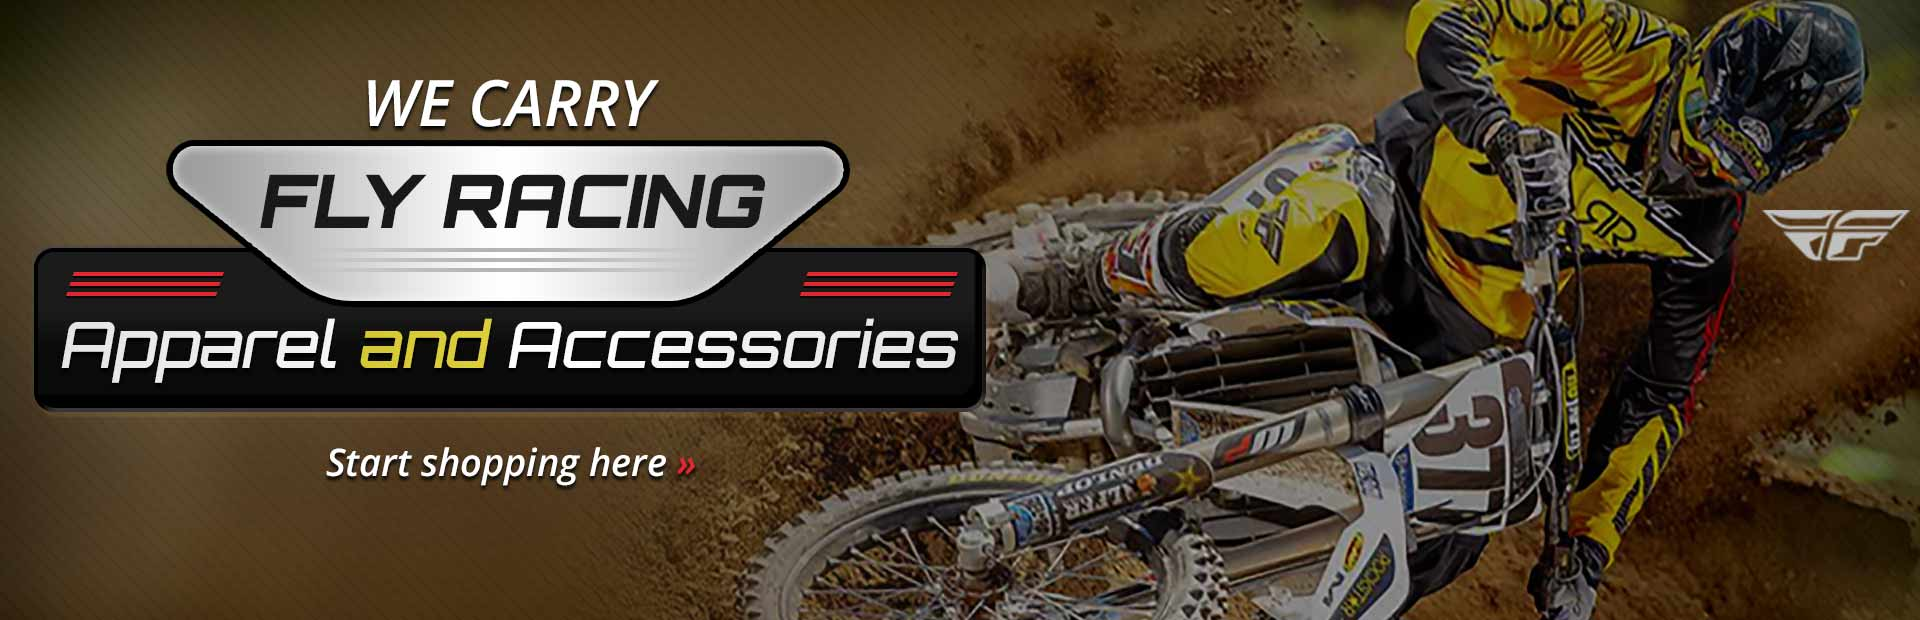 Dirt Bikes Unlimited Springfield, MO (417) 832-1331